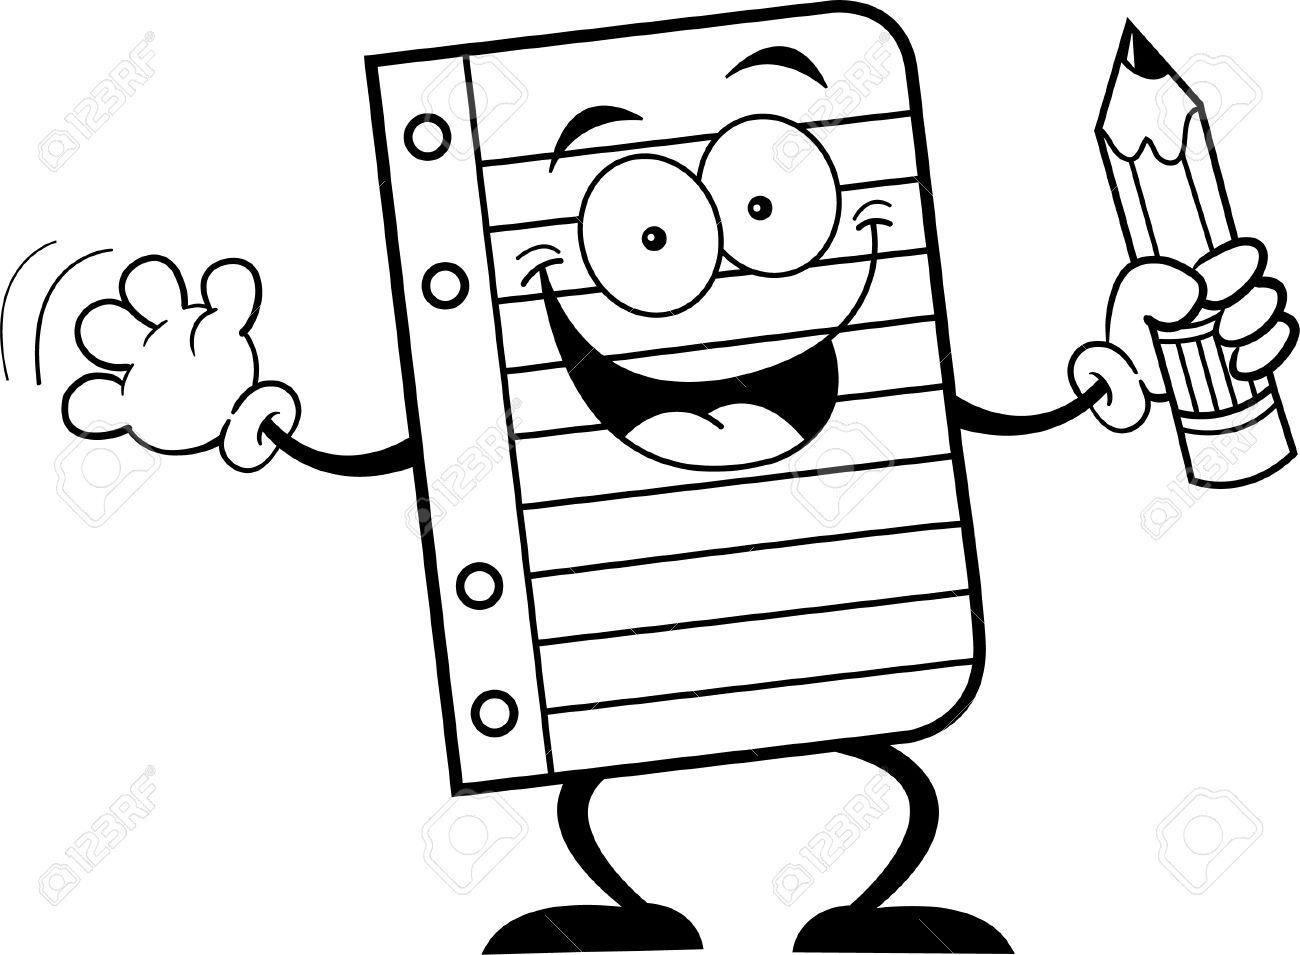 Black And White Illustration Of A Notebook Paper Holding A